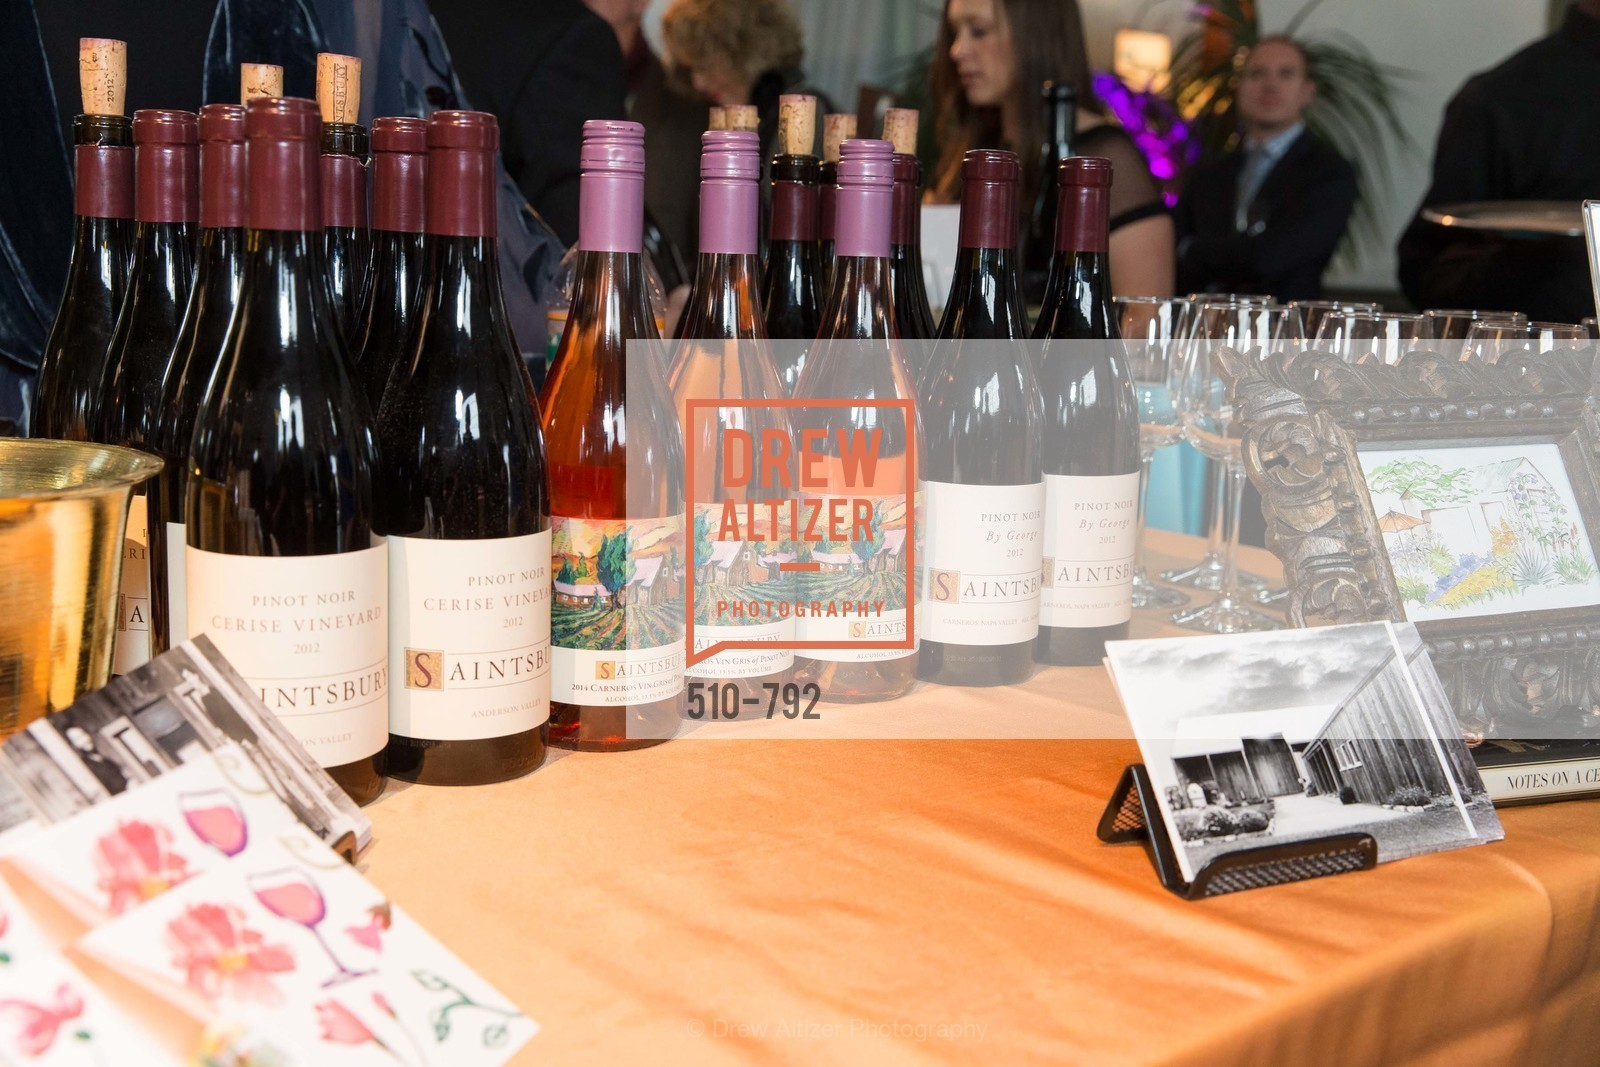 Saintsbury, MEALS ON WHEELS OF SAN FRANCISCO'S 28th Annual Star Chefs and Vintners Gala, US, April 20th, 2015,Drew Altizer, Drew Altizer Photography, full-service agency, private events, San Francisco photographer, photographer california